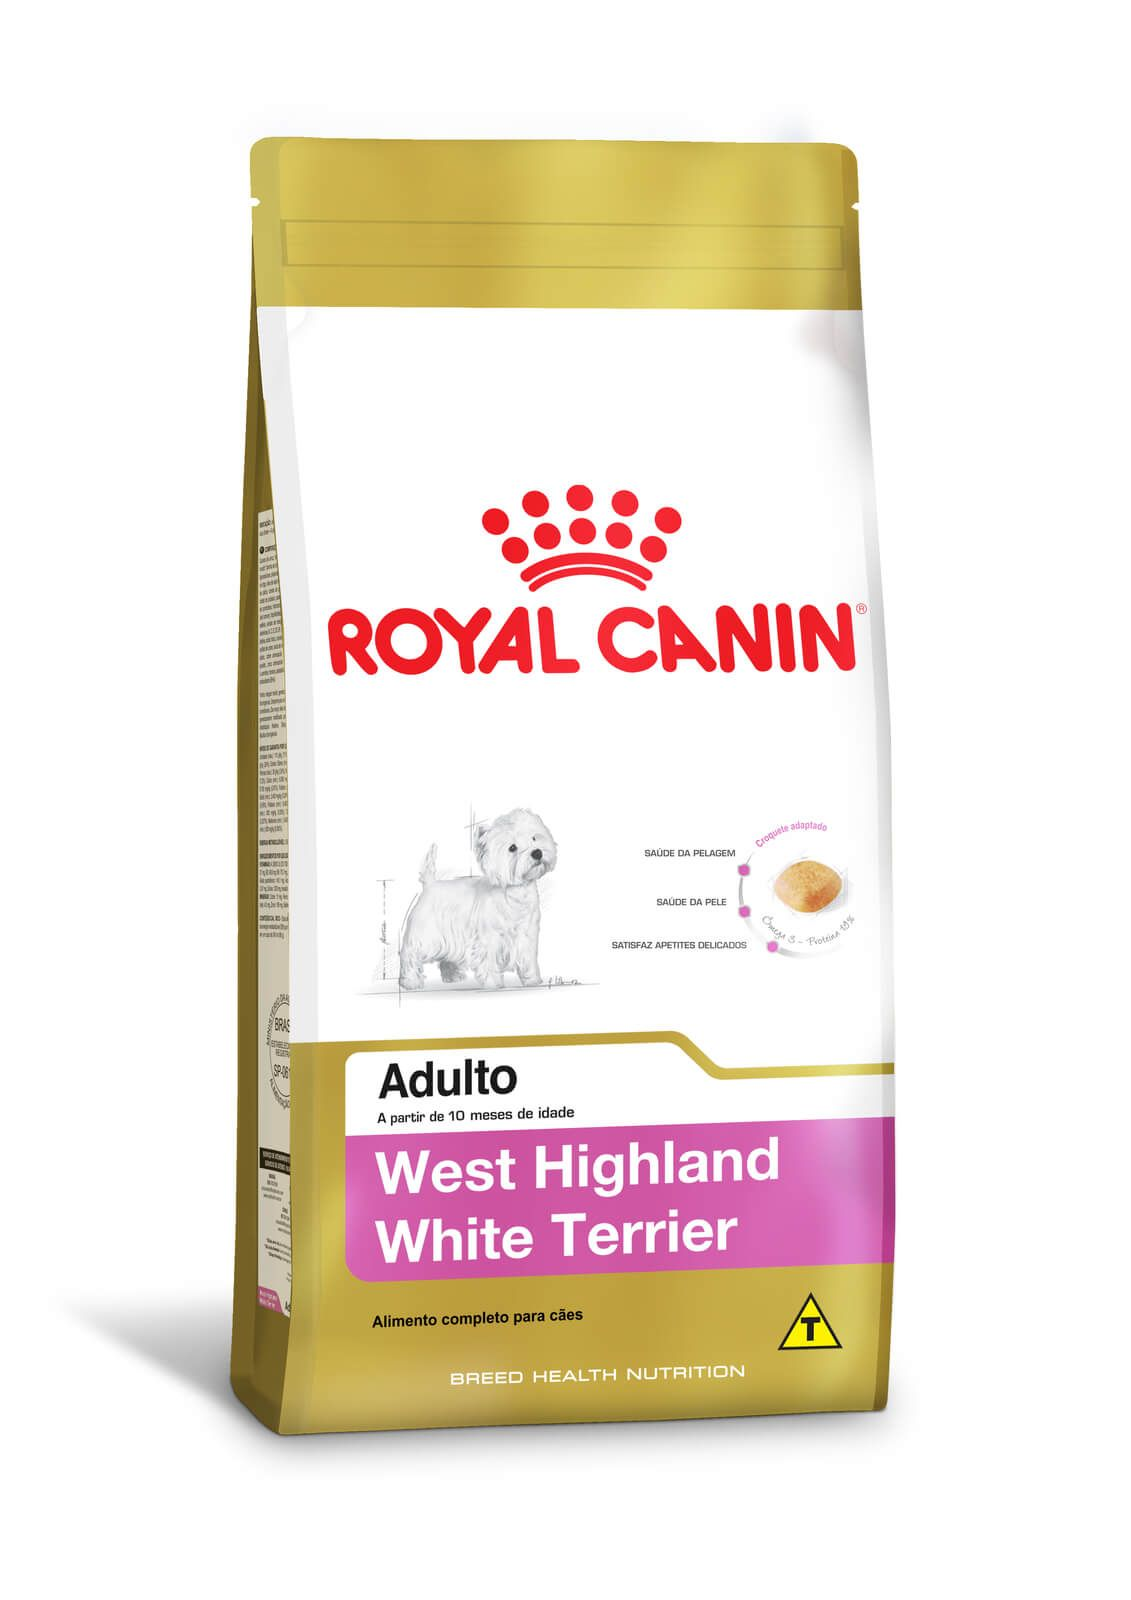 Ração Royal Canin West Highland White Terrier Adult 2,5 kg